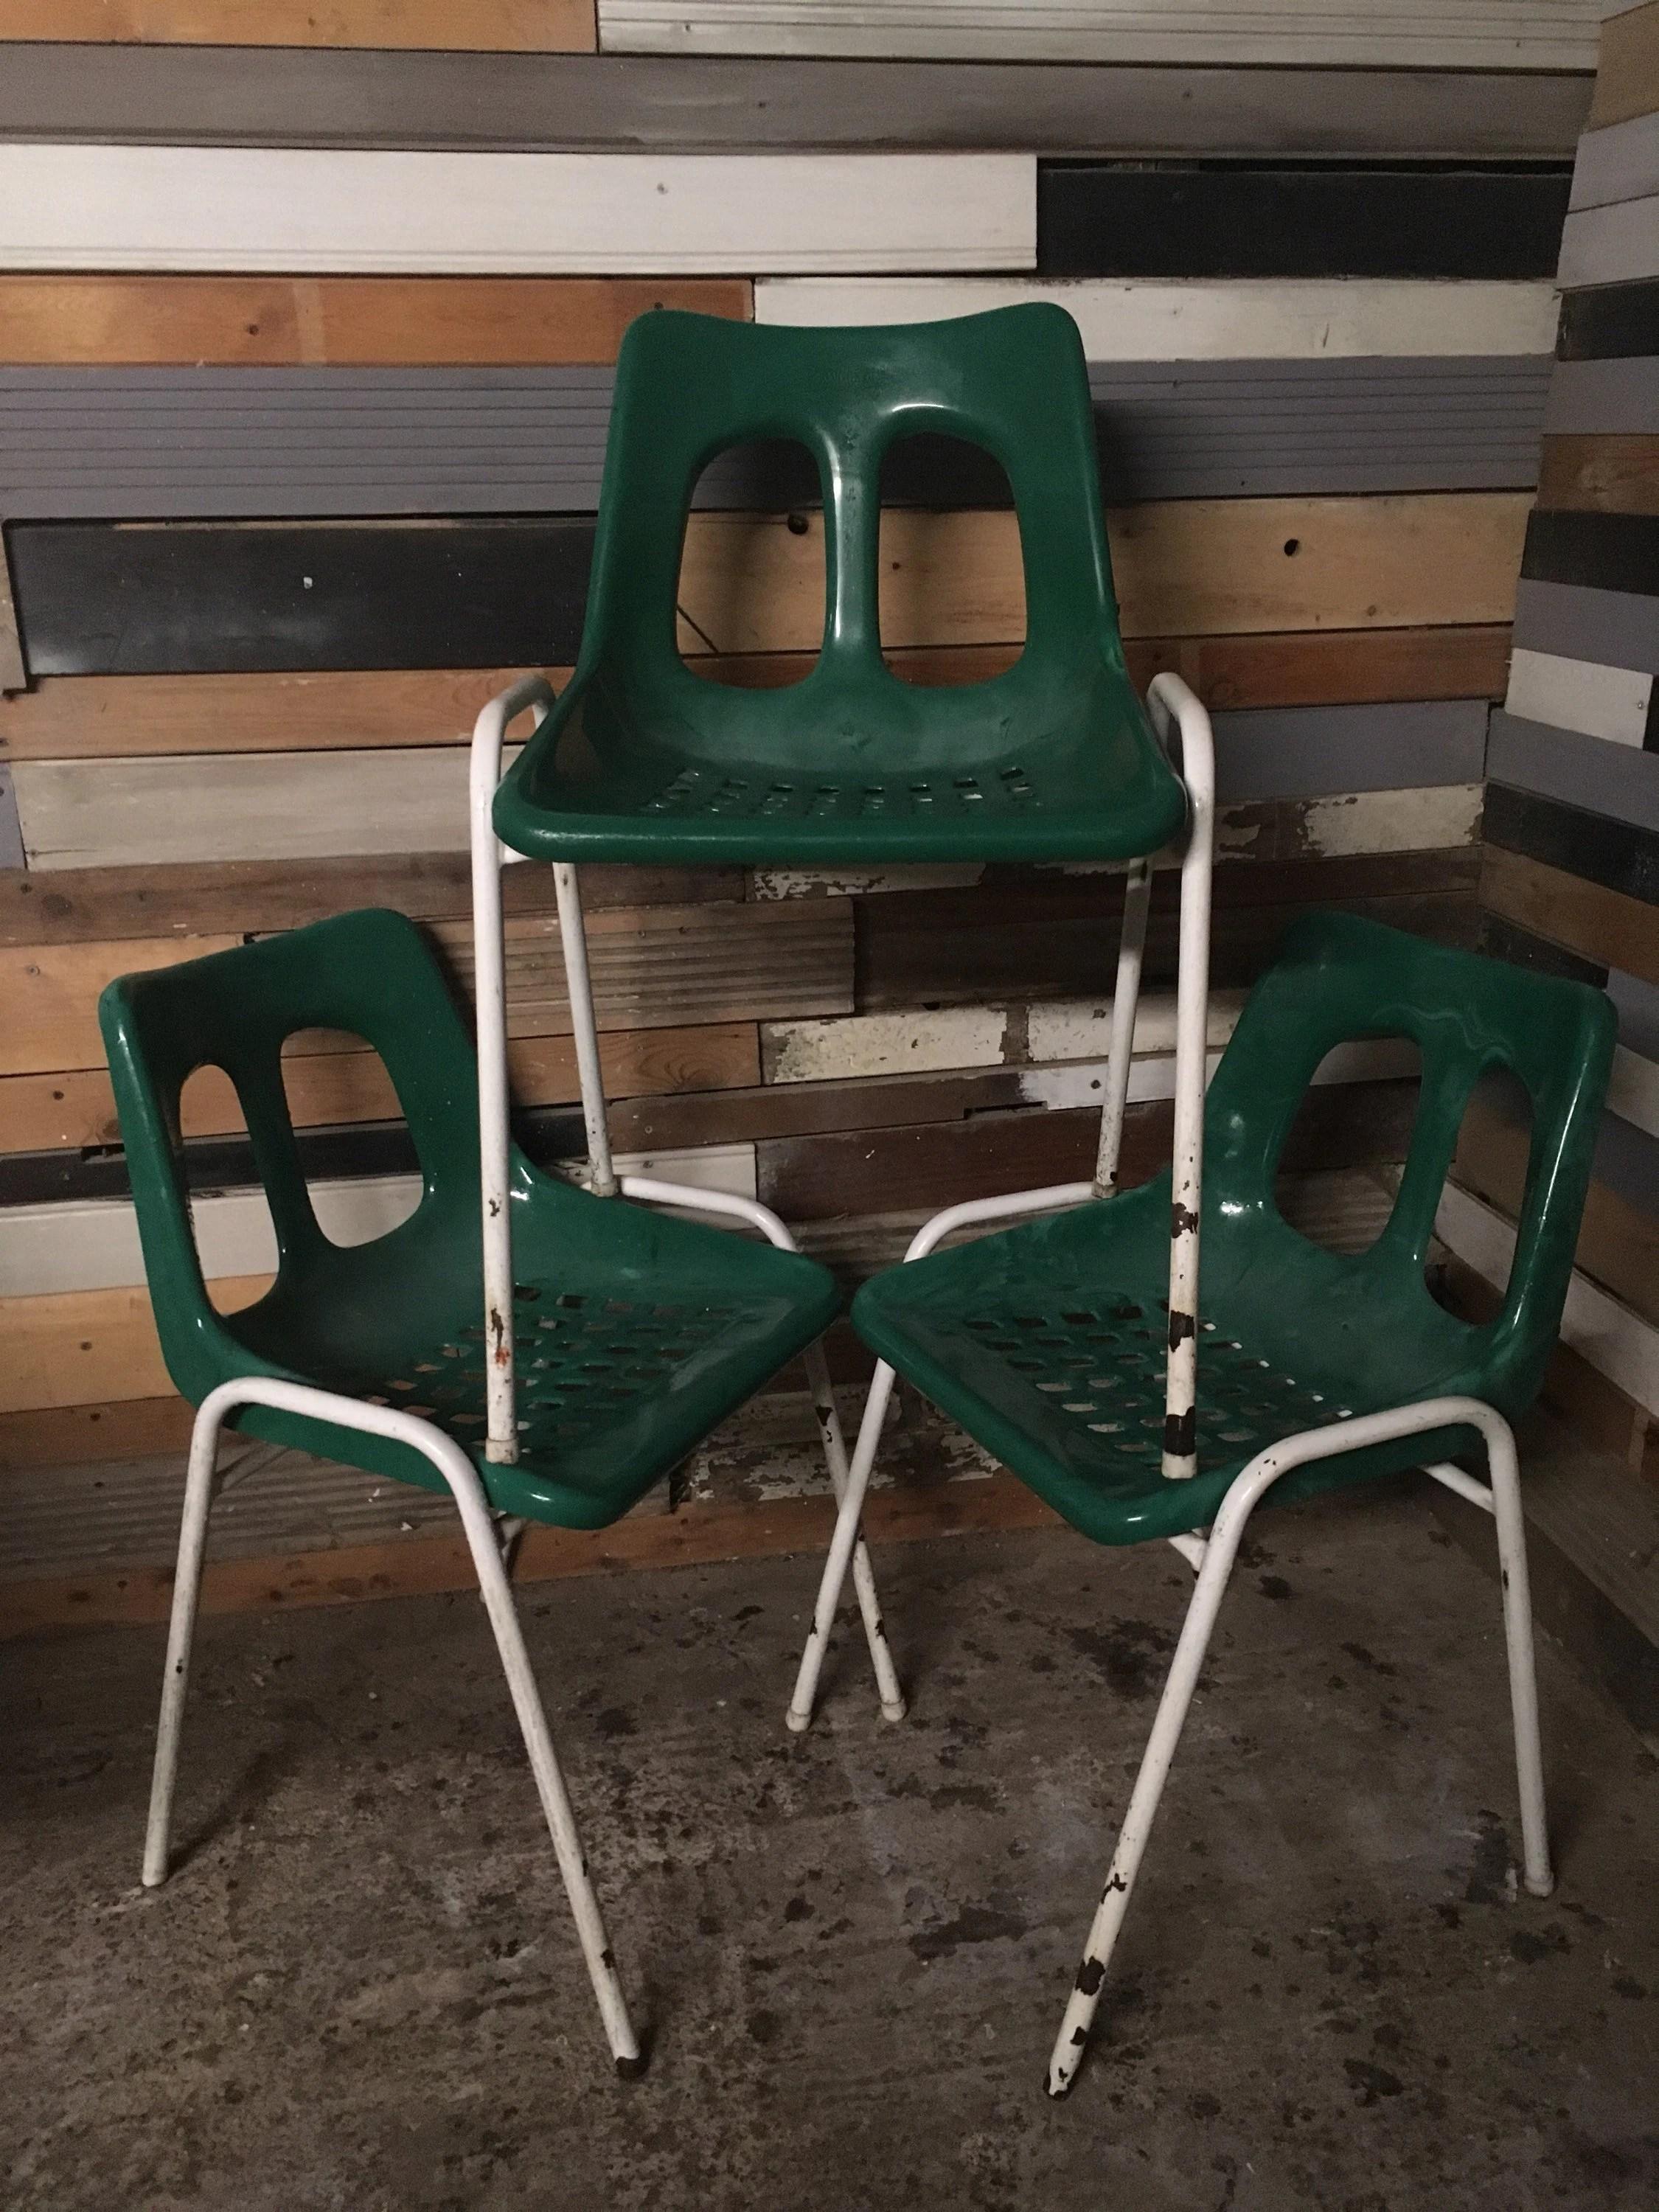 Esszimmermöbel Vintage Retro Vintage Set Of 12 Mid Century Metal Stacking Chairs Adult Height Restaurant Cafe Stacking Chairs Sold Individually Or As A Group